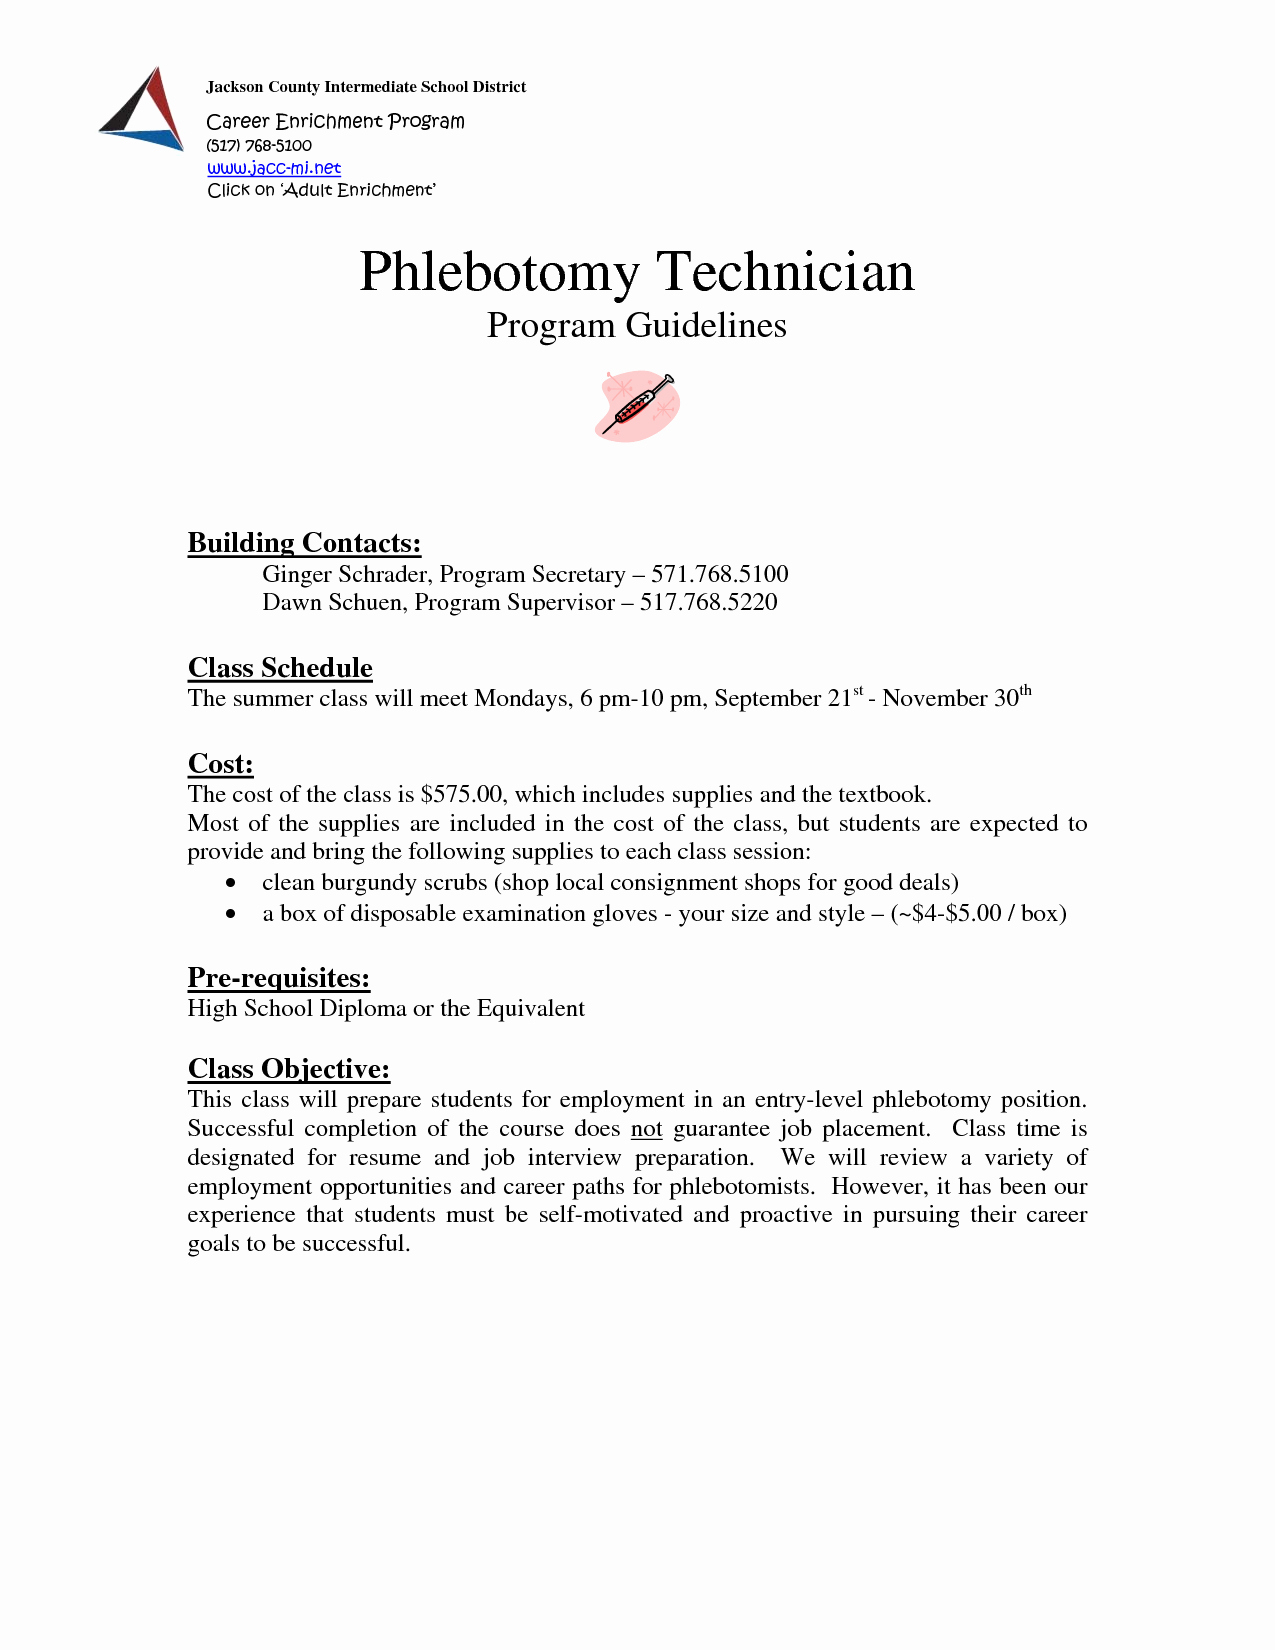 Phlebotomy Cover Letter Template - Cover Letter Tips New Phlebotomy Cover Letter Sample